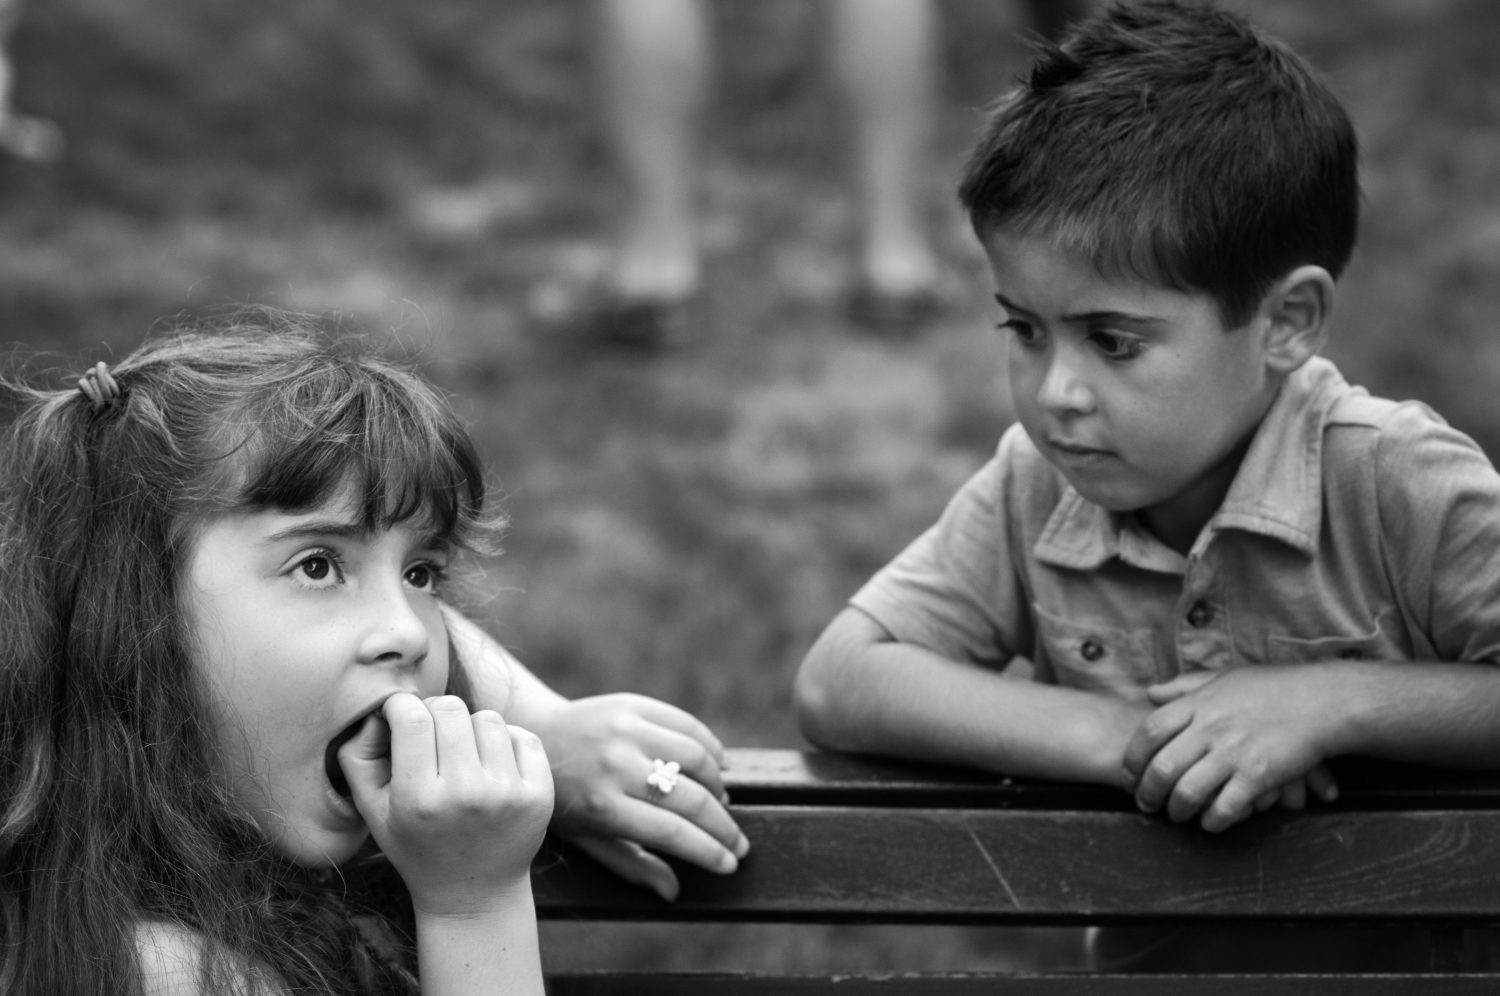 black and white photo of young girl wiggling her loose tooth while young boy watches